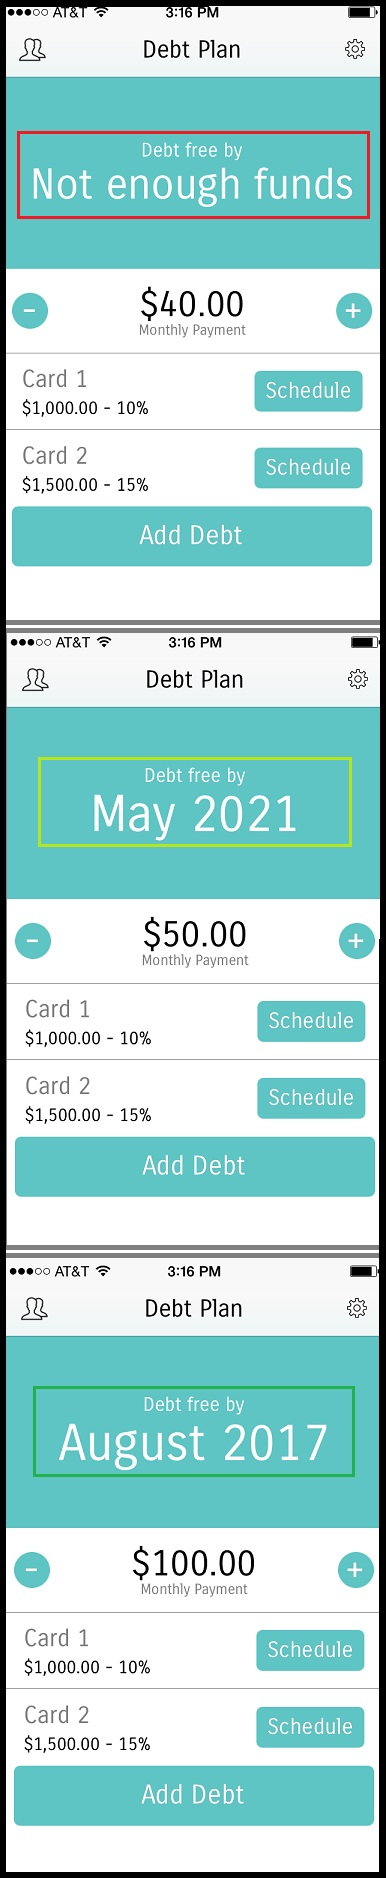 Want to pay off debt but think it'll take forever? It doesn't have to. This Debt Plan App/Payoff combo strategy will pay off your debt faster than you'd believe. Watch your debt and stress disappear.